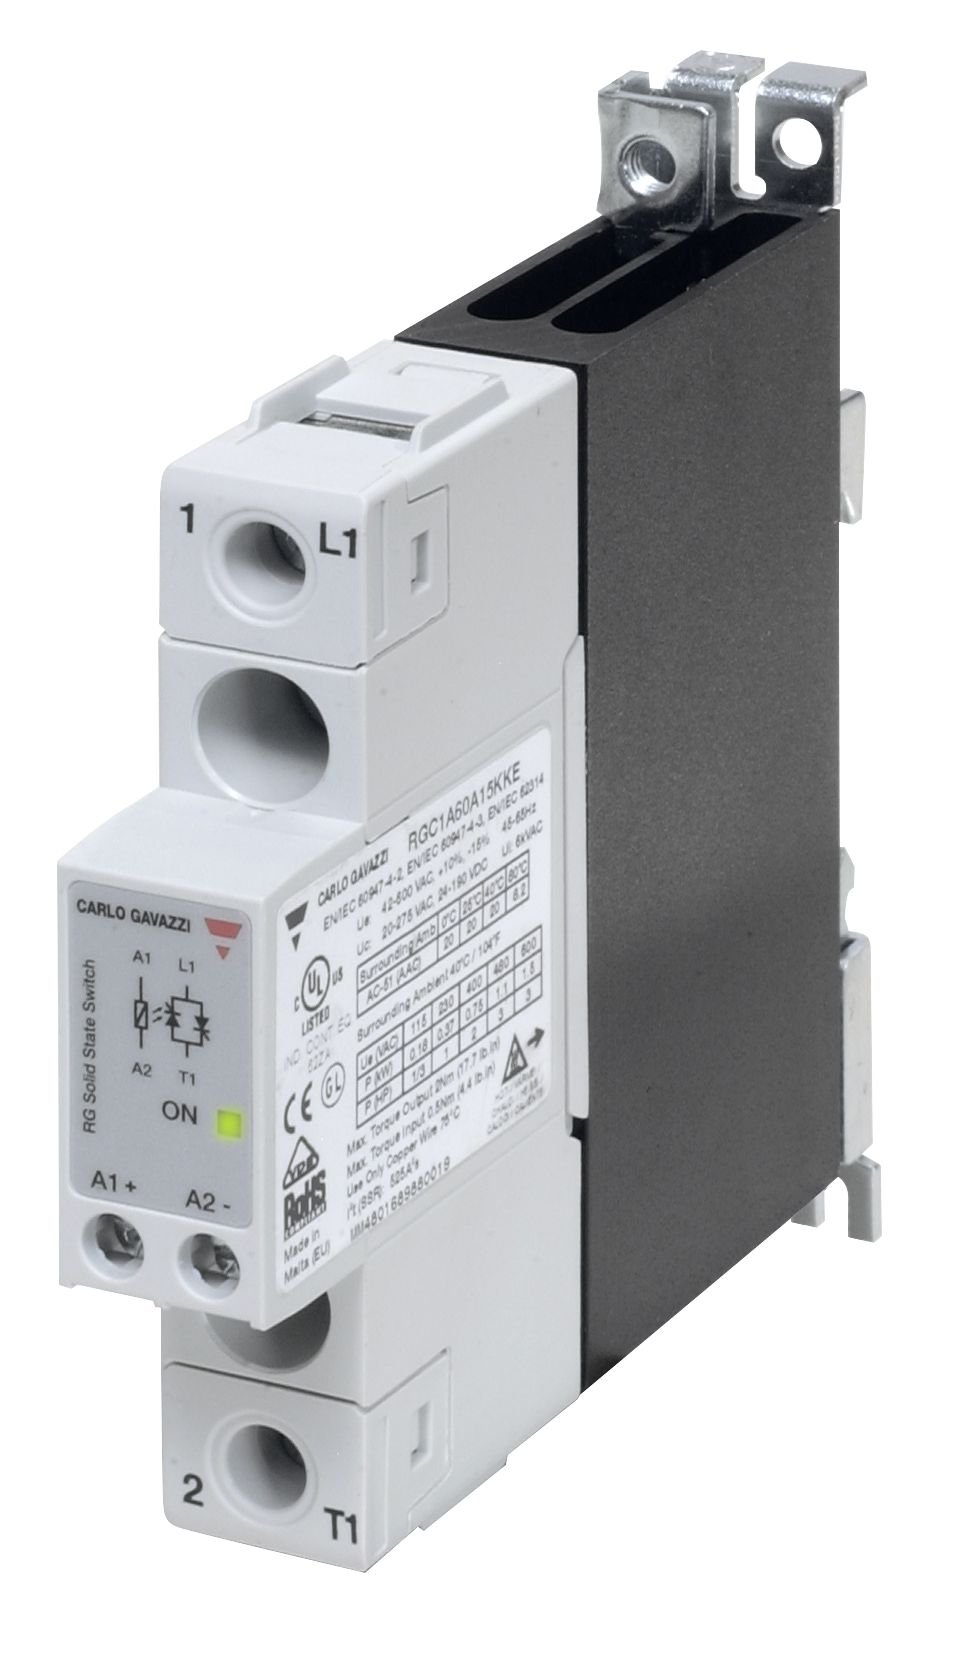 CARLO GAVAZZI RGC1A60D15KGU Solid State Relay and Contactor, Slim 17.5 mm Width, Maximum 20 amp AC Switching, Up to 3 hp Rated, 3-32 VDC Control Voltage, 42-600 VAC Switching, 1200 Vp Blocking Voltage, IP20 Cover, Diagnostic LEDs, 9.2 oz. Size, 27 mm Heig